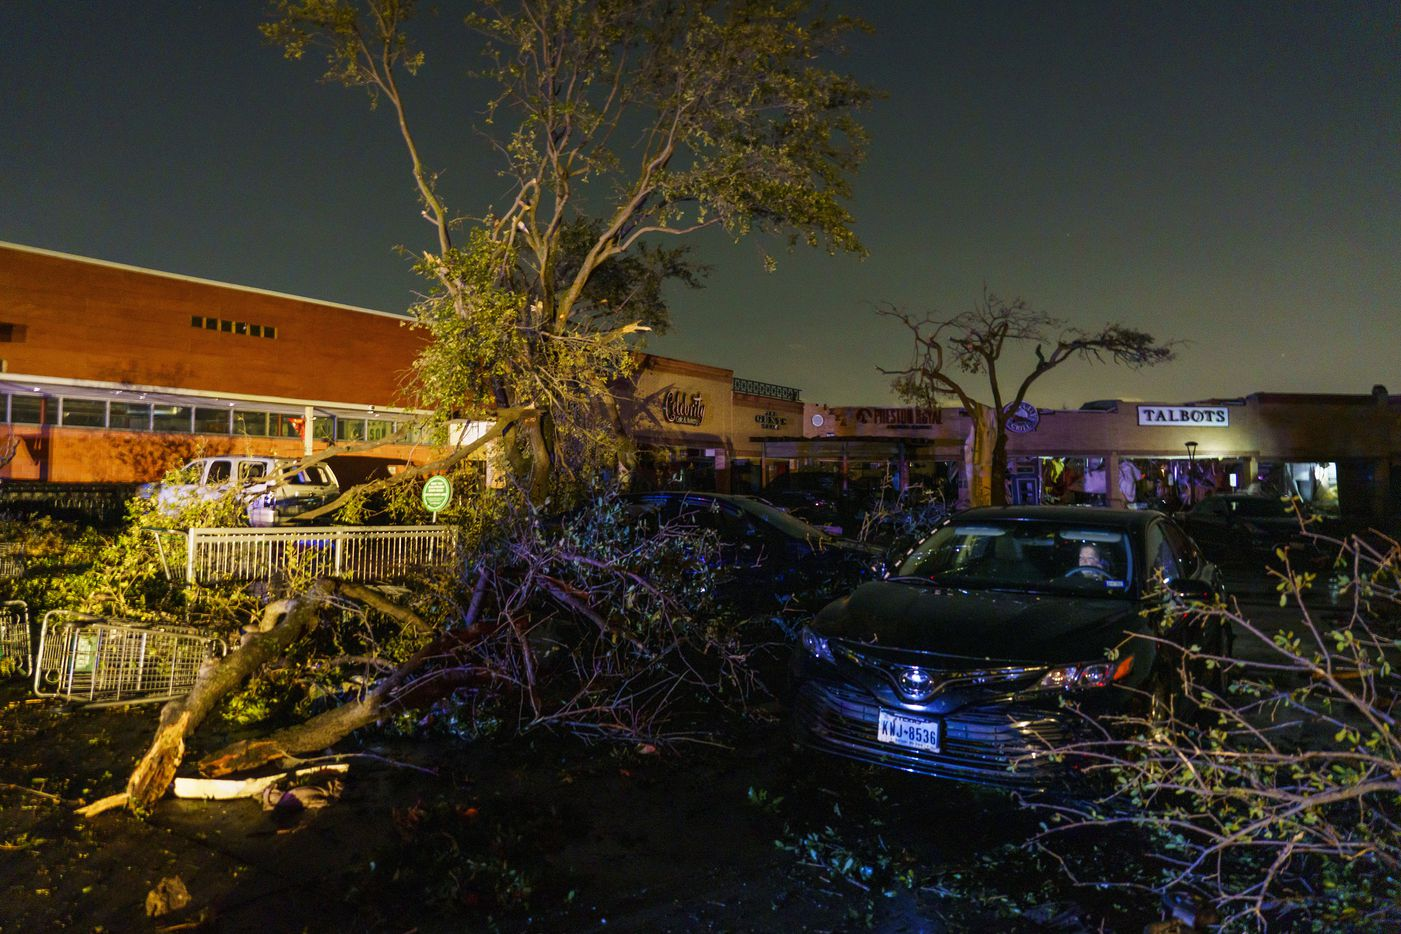 A woman sits in a car surrounded by tornado damage near the intersection of Royal and Preston on Sunday, Oct. 20, 2019, in Dallas. (Smiley N. Pool/The Dallas Morning News)